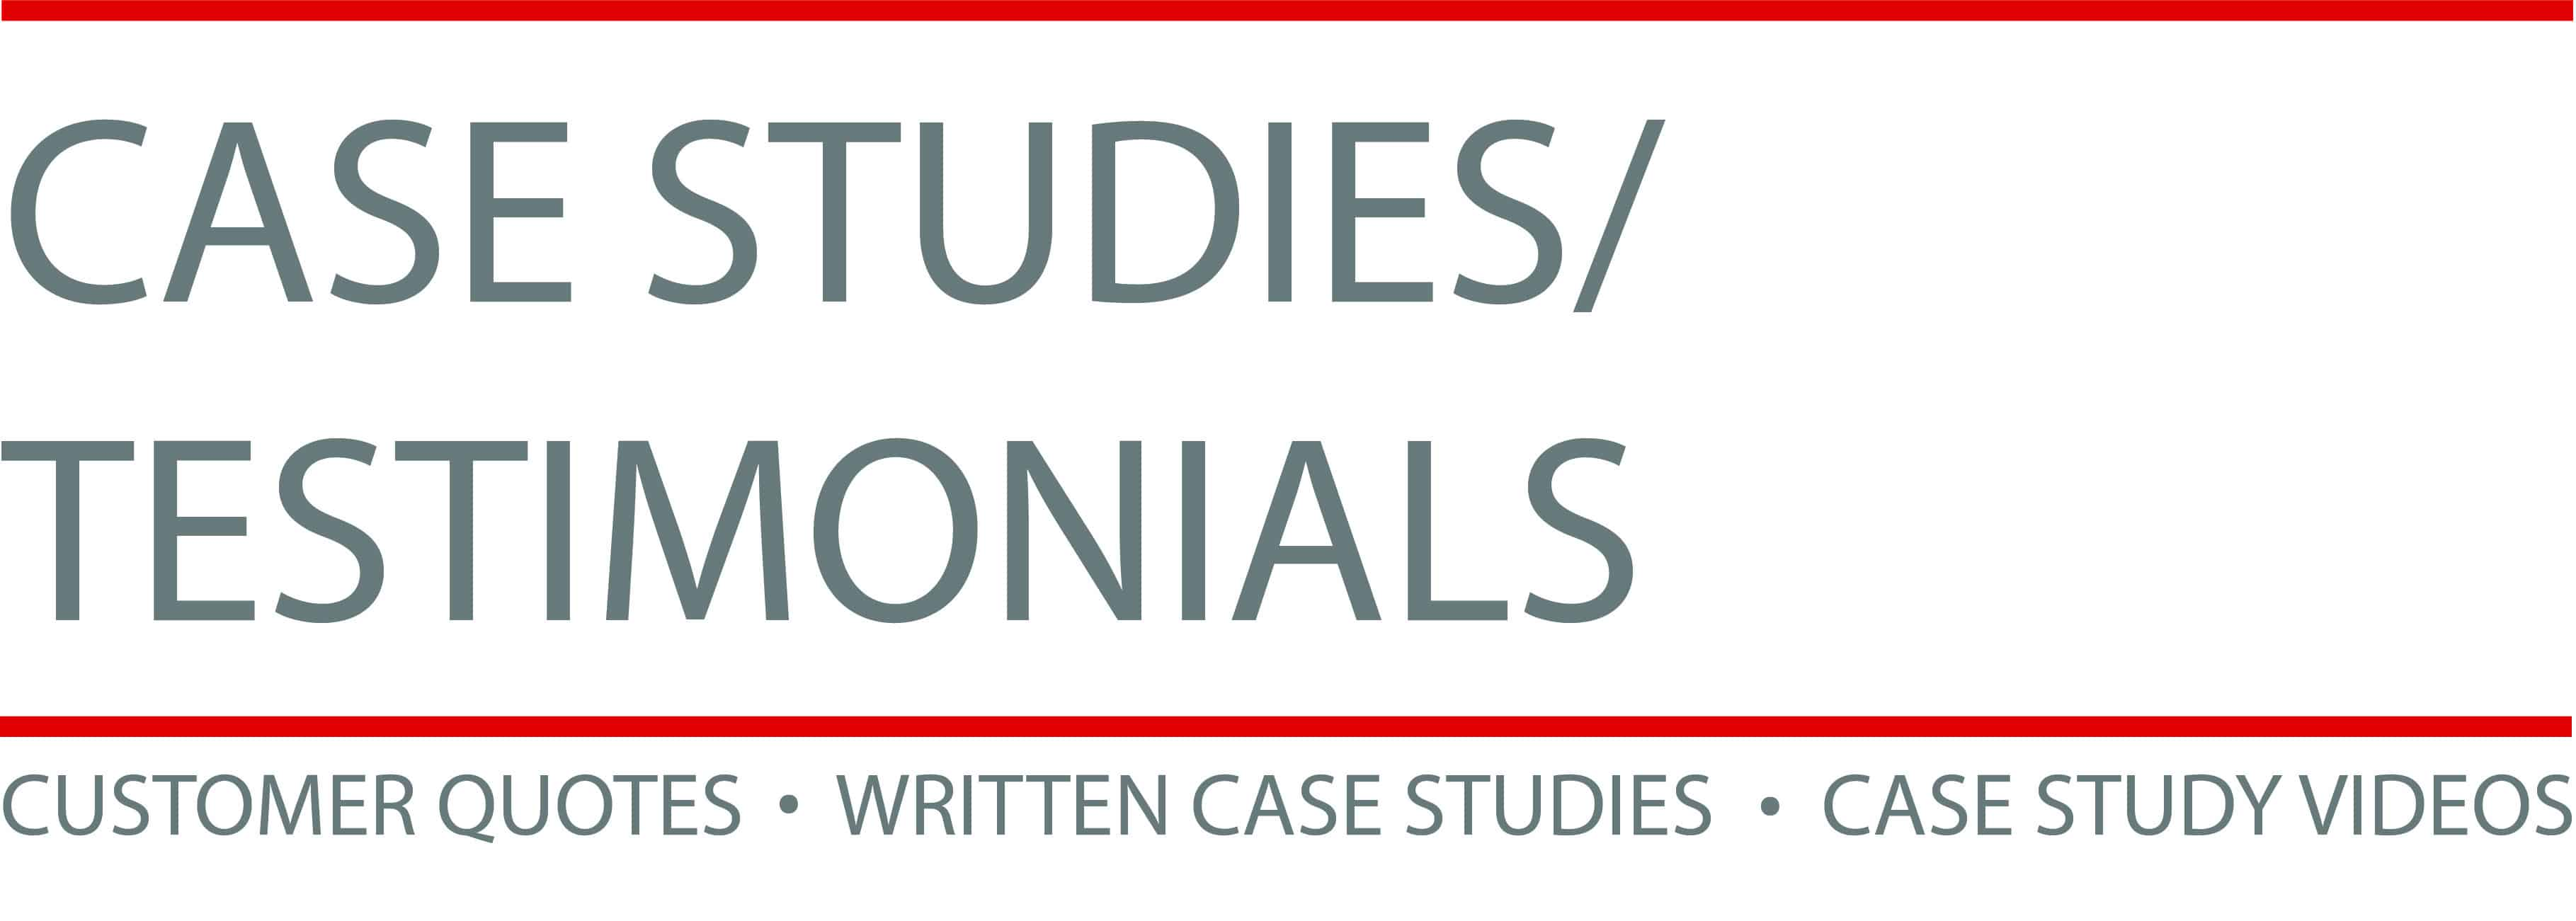 Case Studies and Testimonials Graphic for Sales